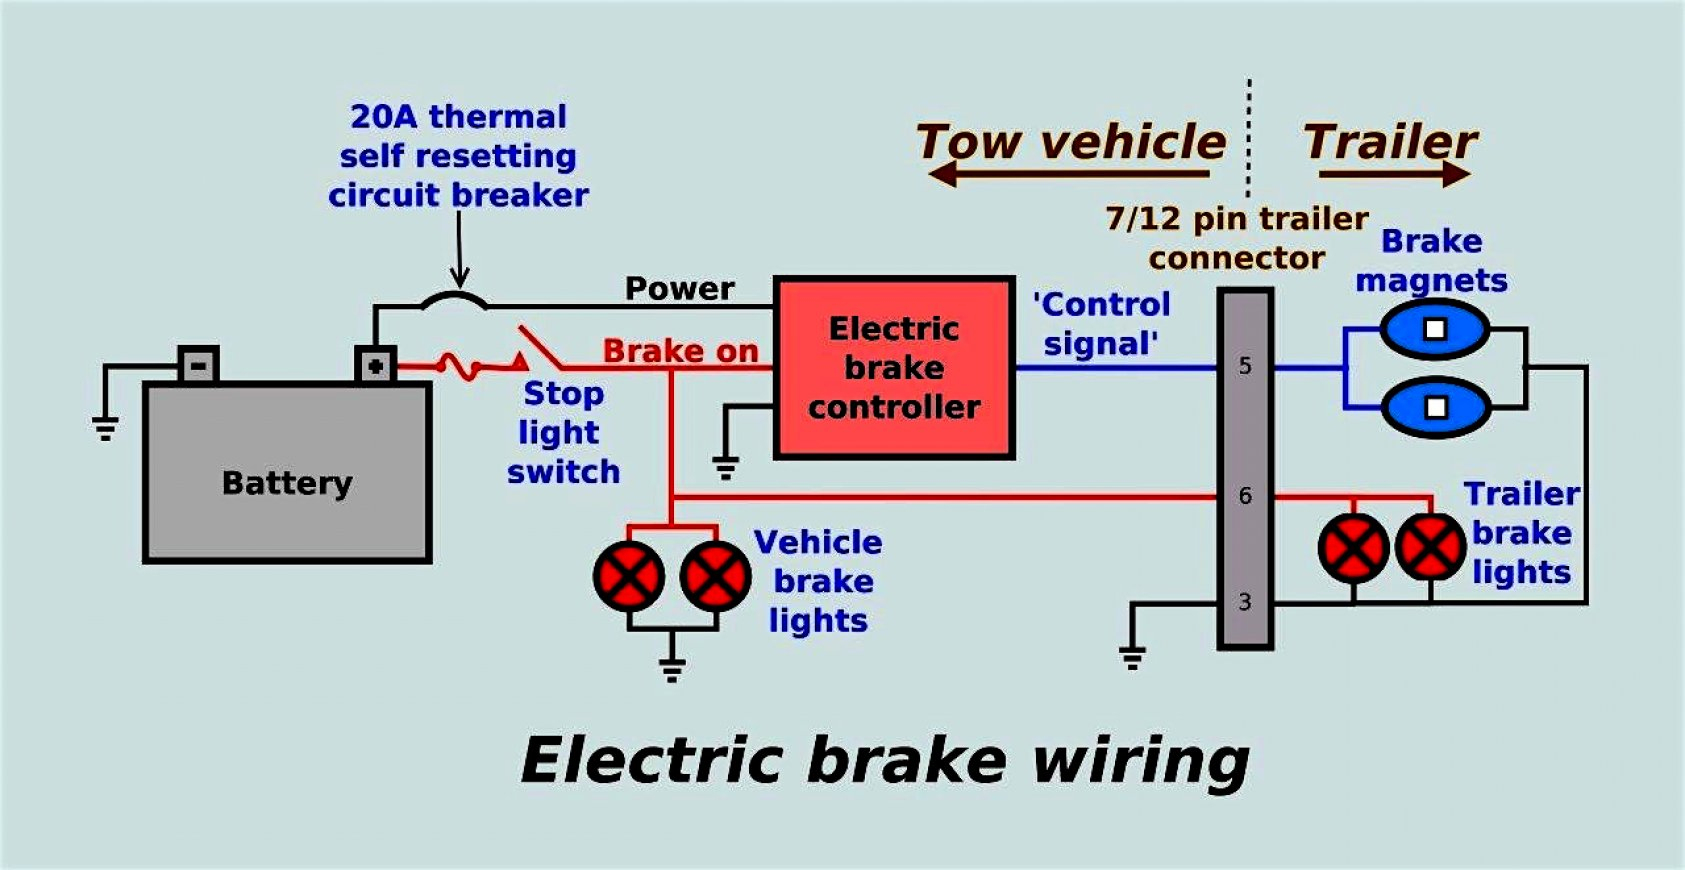 7 Pin Rv Wiring Diagram keaway | Wiring Diagram  Pin Trailer Wiring Diagram With Breakaway on 7 pronge trailer connector diagram, 4 pin trailer diagram, trailer plug diagram, 7 pin rv wiring, 7 pin trailer wire, 7 pin trailer tools, 7 pin trailer brakes, 7 wire diagram, 7 pin tow wiring, 7 pin trailer connector, 7 pin trailer lighting,